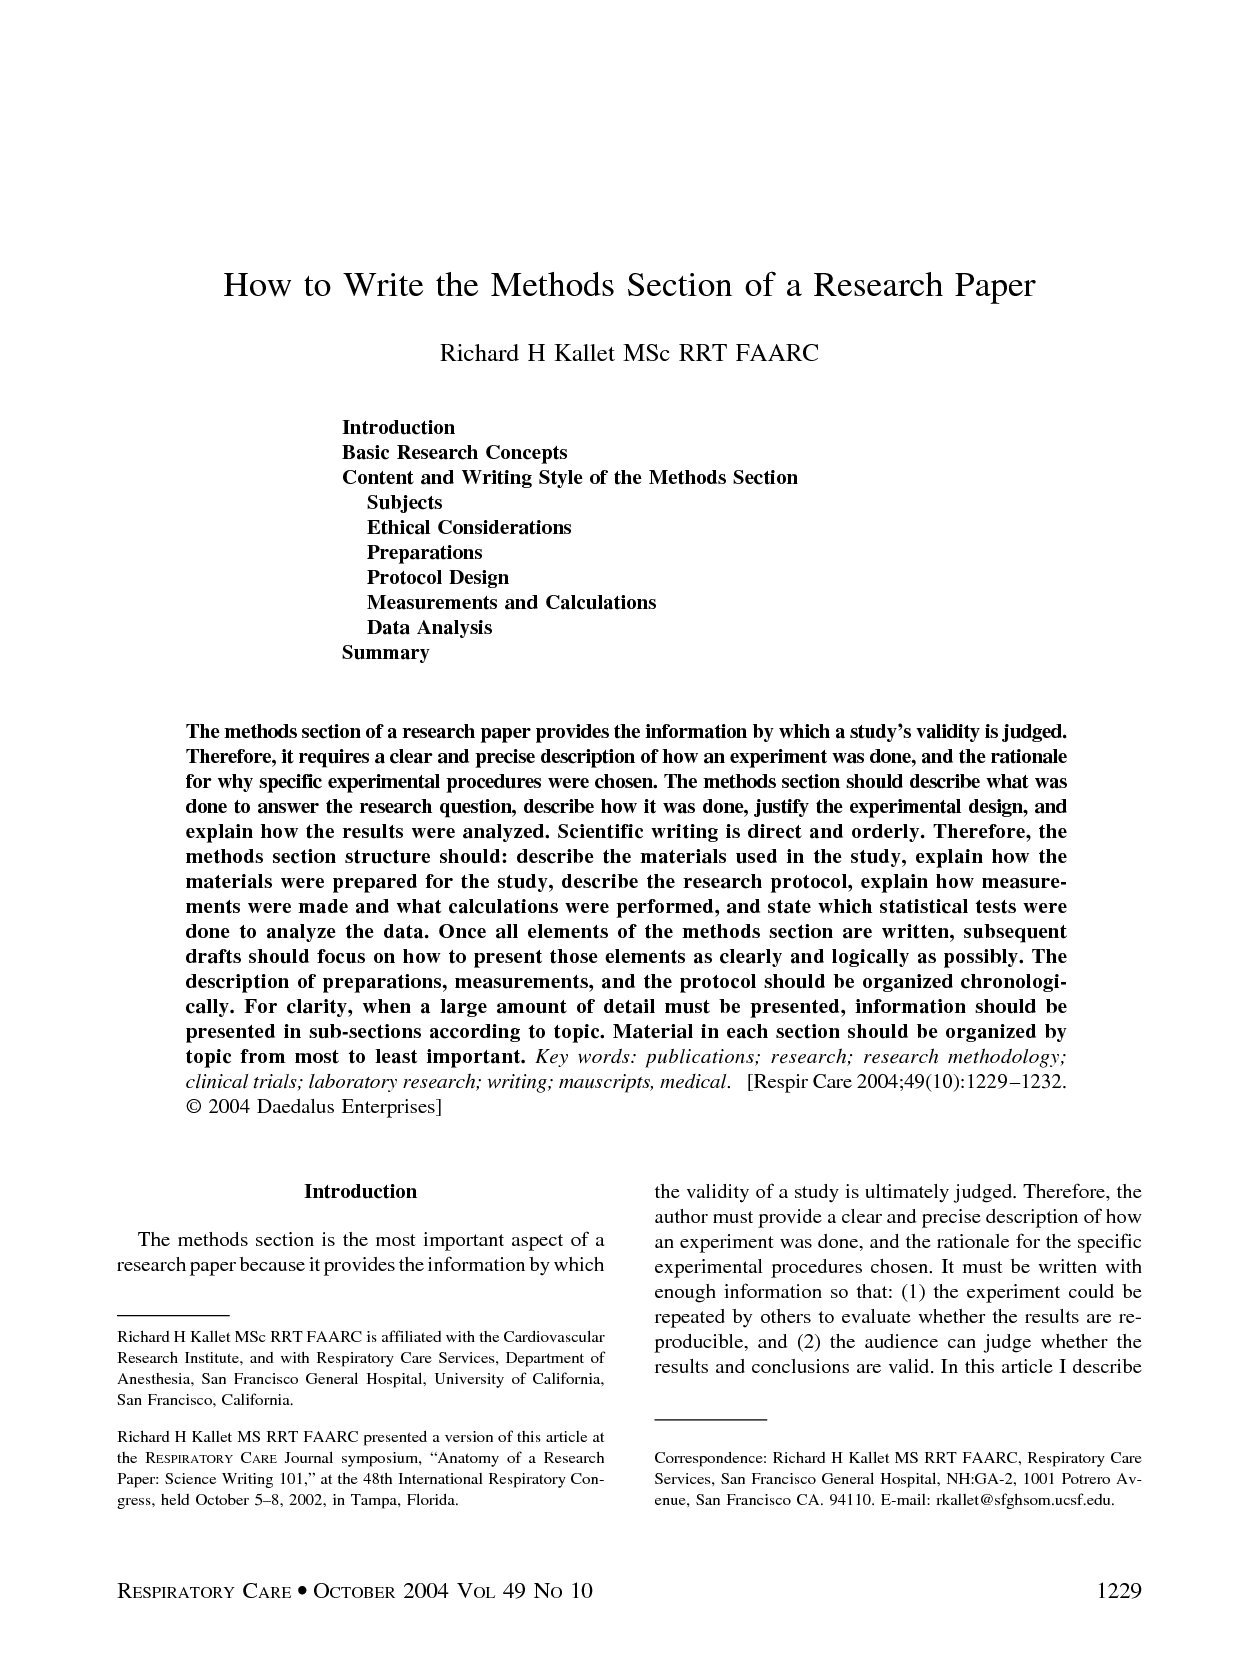 essay on research methodology To fully understand what information particular parts of the paper should discuss, here's another research paper example including some key parts of the paper.